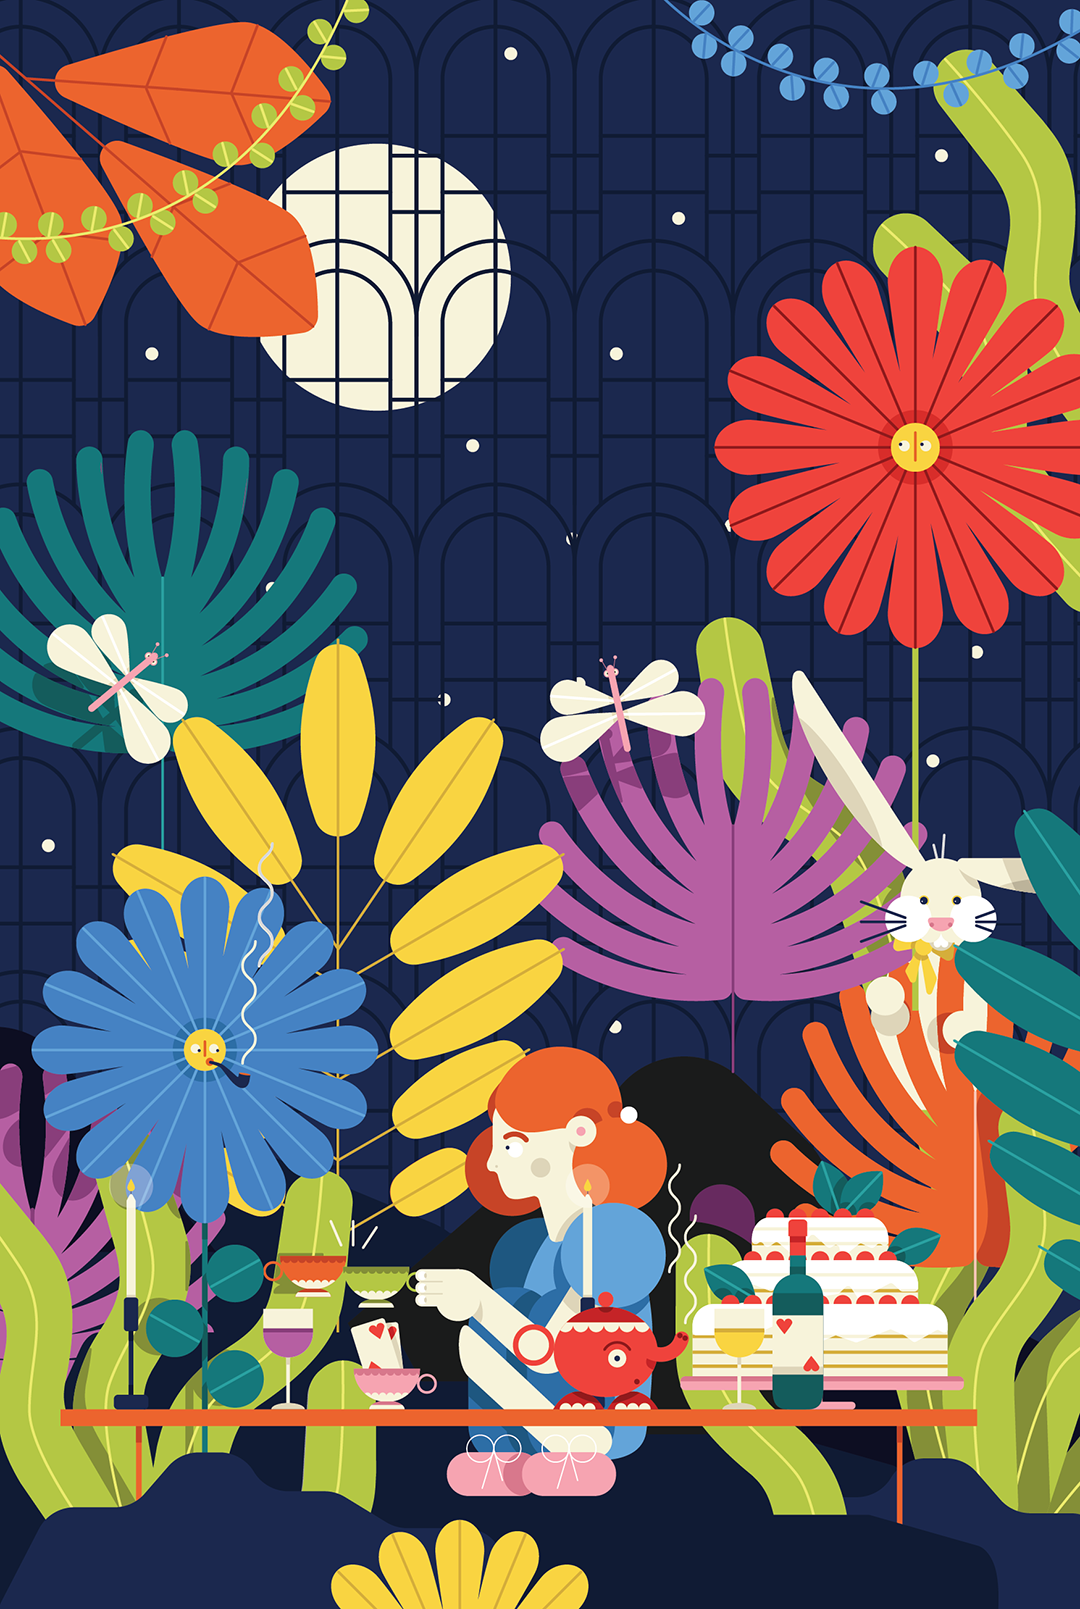 Colorful illustration by Caterina Ljung